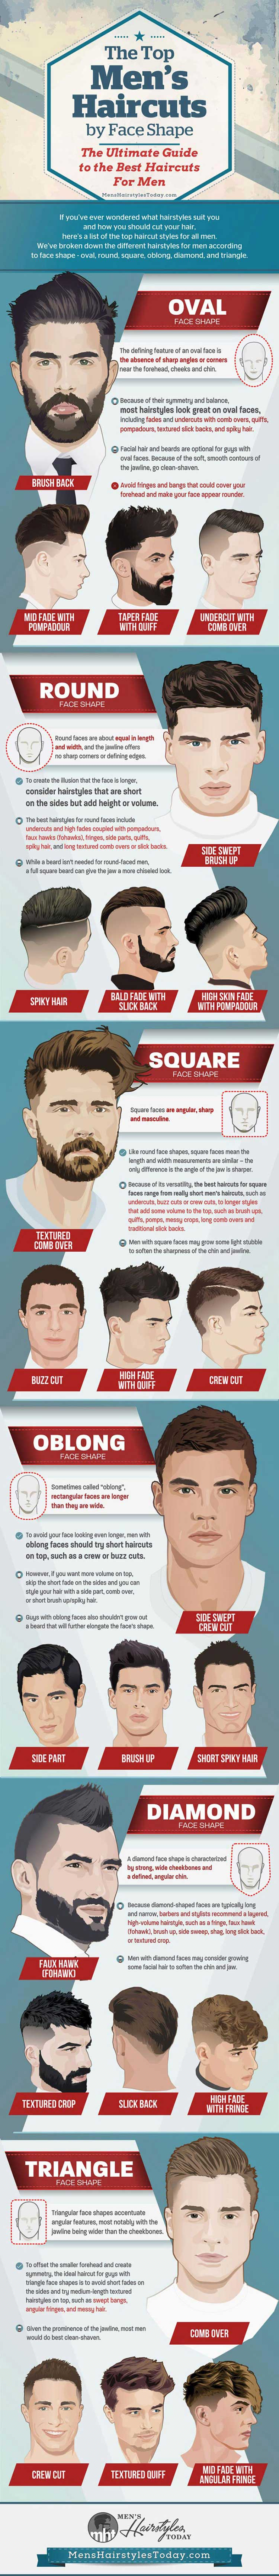 Gentlemans_barber_spa_infographic